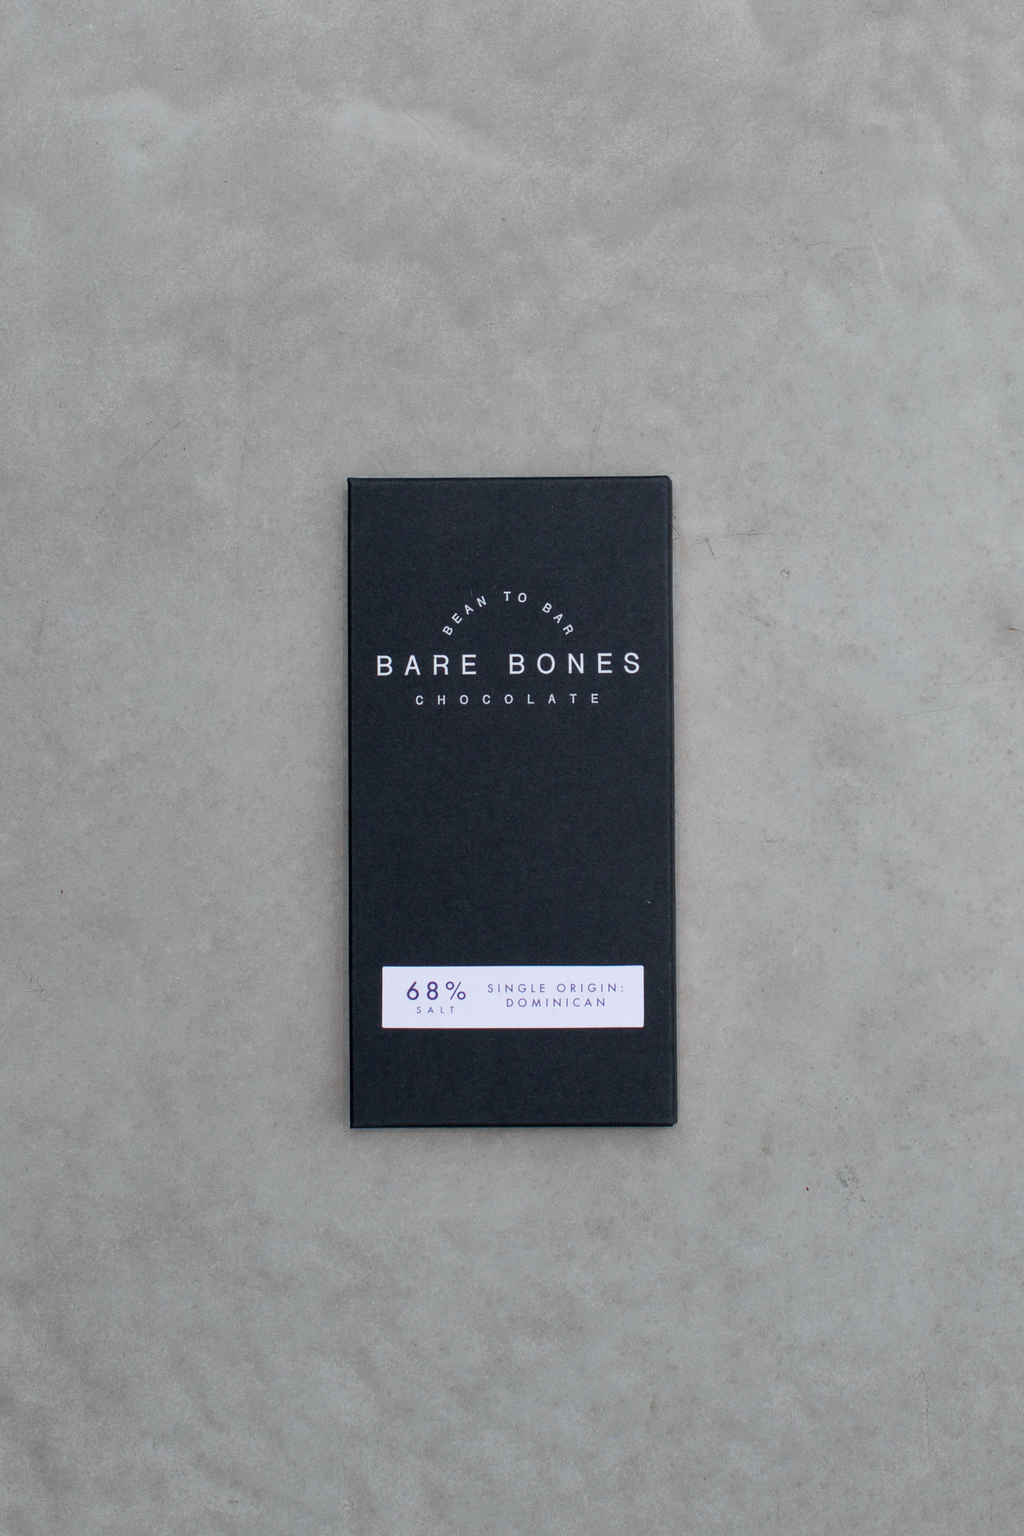 Dominican 68% Salted Chocolate - Bare Bones Chocolate